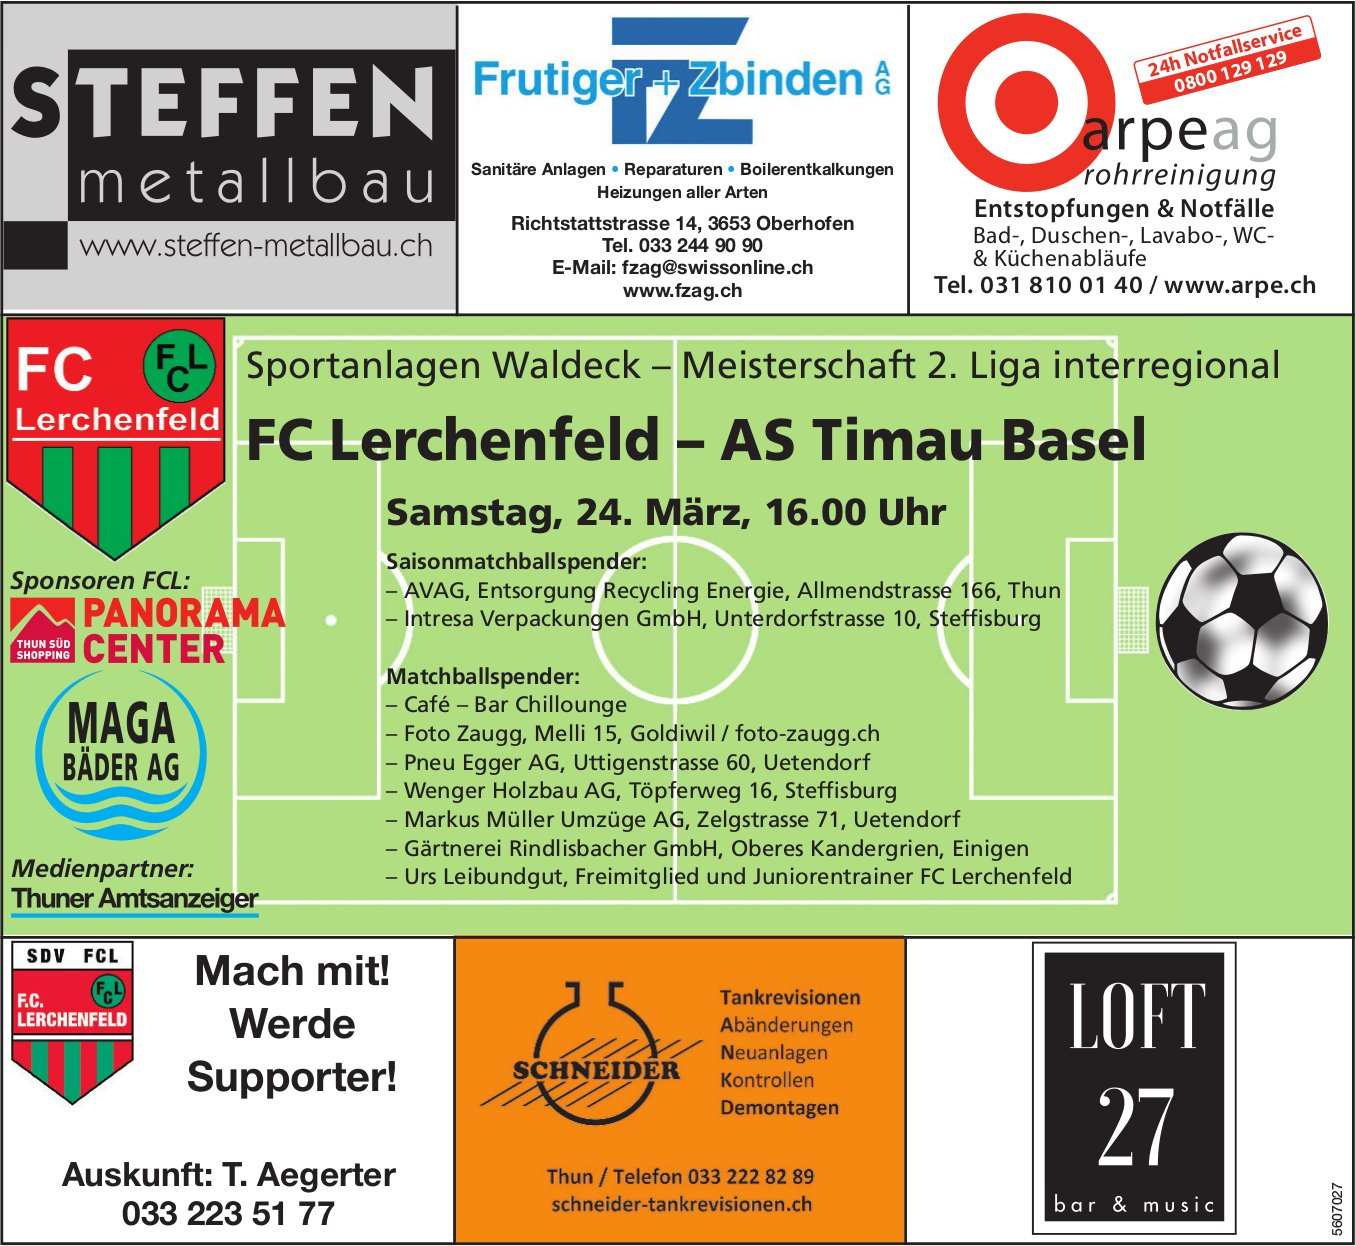 Meisterschaft 2. Liga interregional - FC Lerchenfeld vs. AS Timau Basel am 24. März